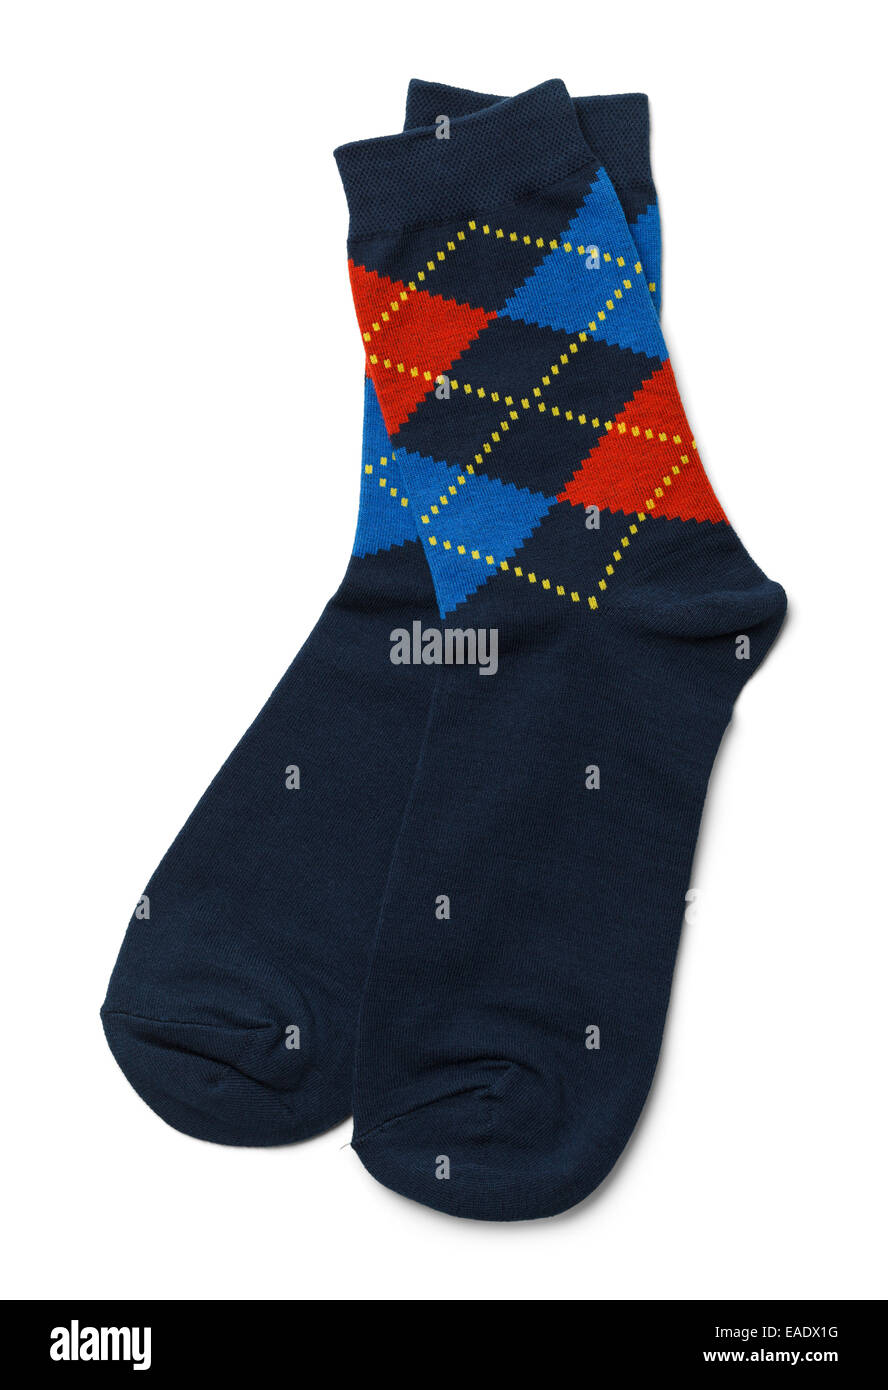 Pair of Blue Socks Isolated on White Background. - Stock Image